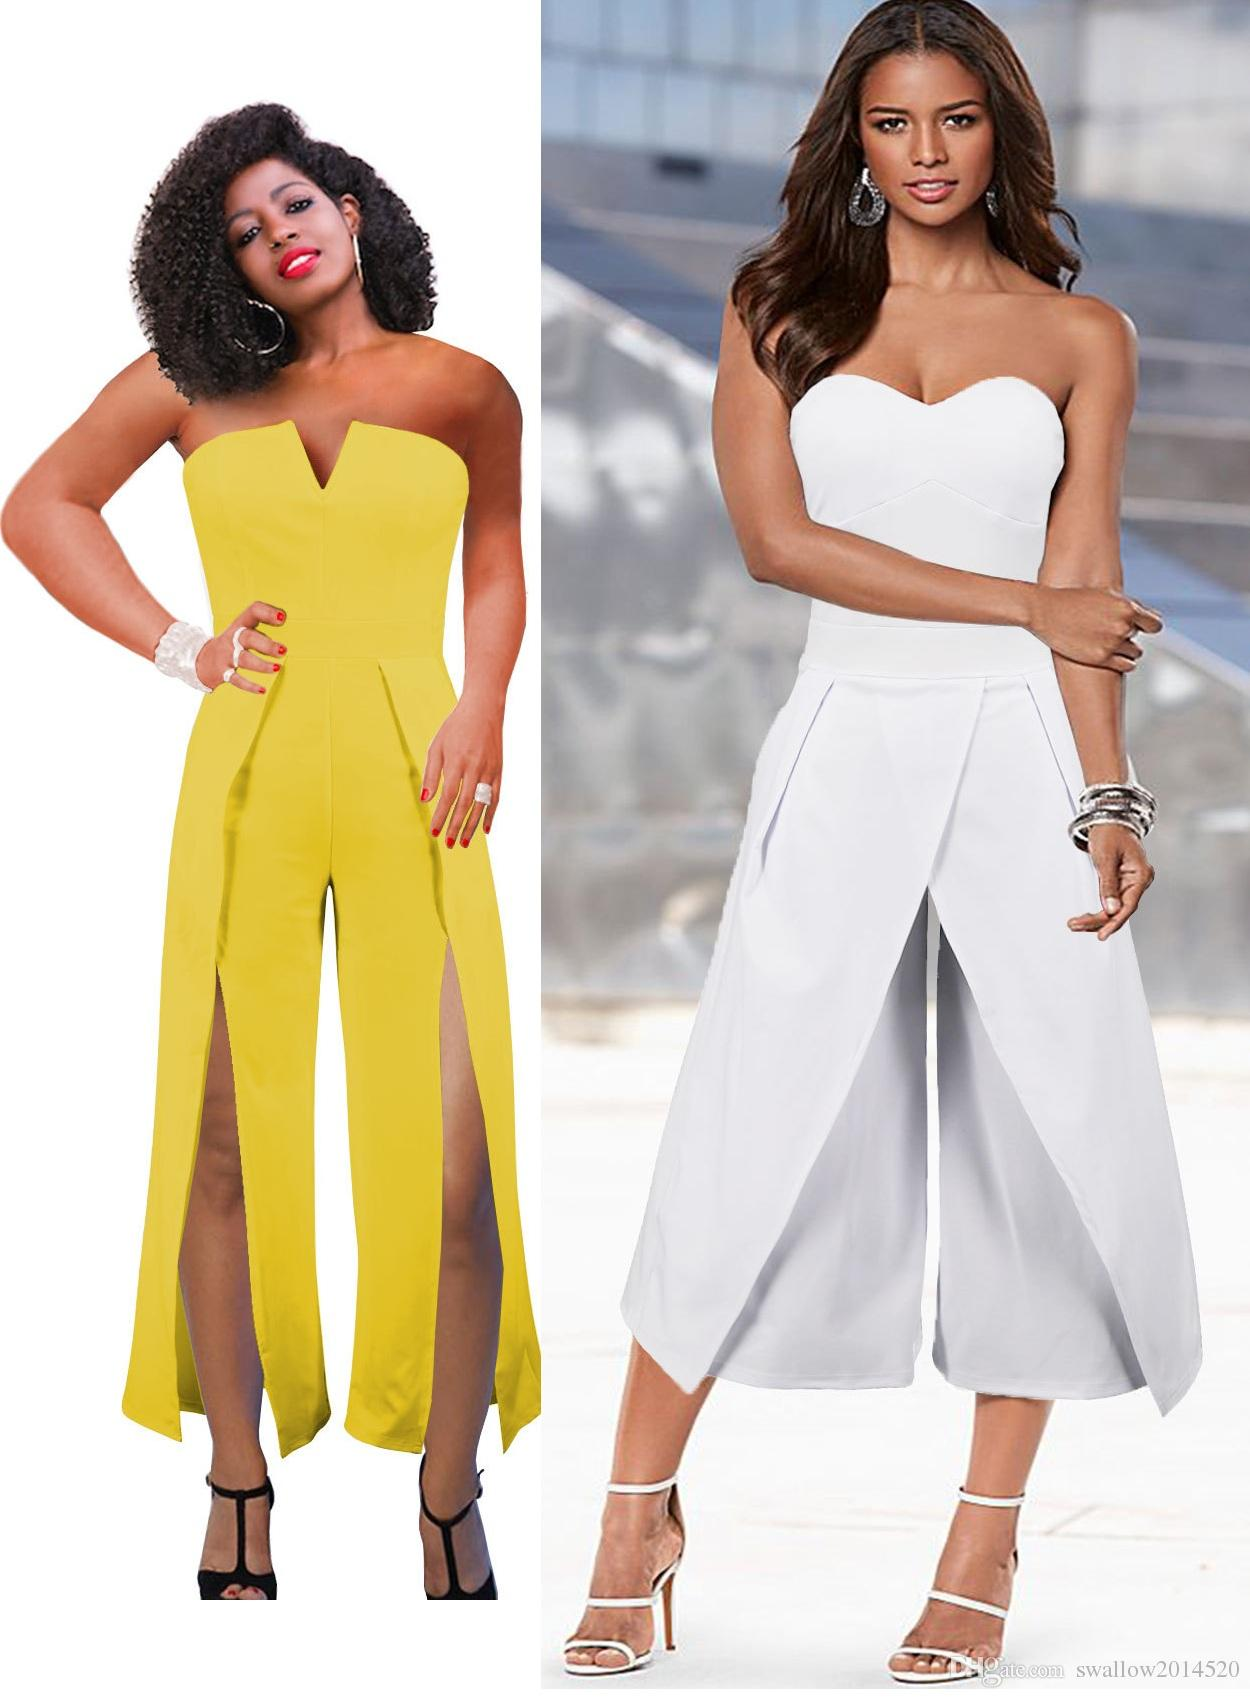 0a384c20bd2 2019 2018 Two New Styles Ladies Evening Party Jumpsuit Sexy Strapless Split  Wide Leg Jumpsuits White Yellow Slim Fit Long Rompers S 2XL From  Swallow2014520